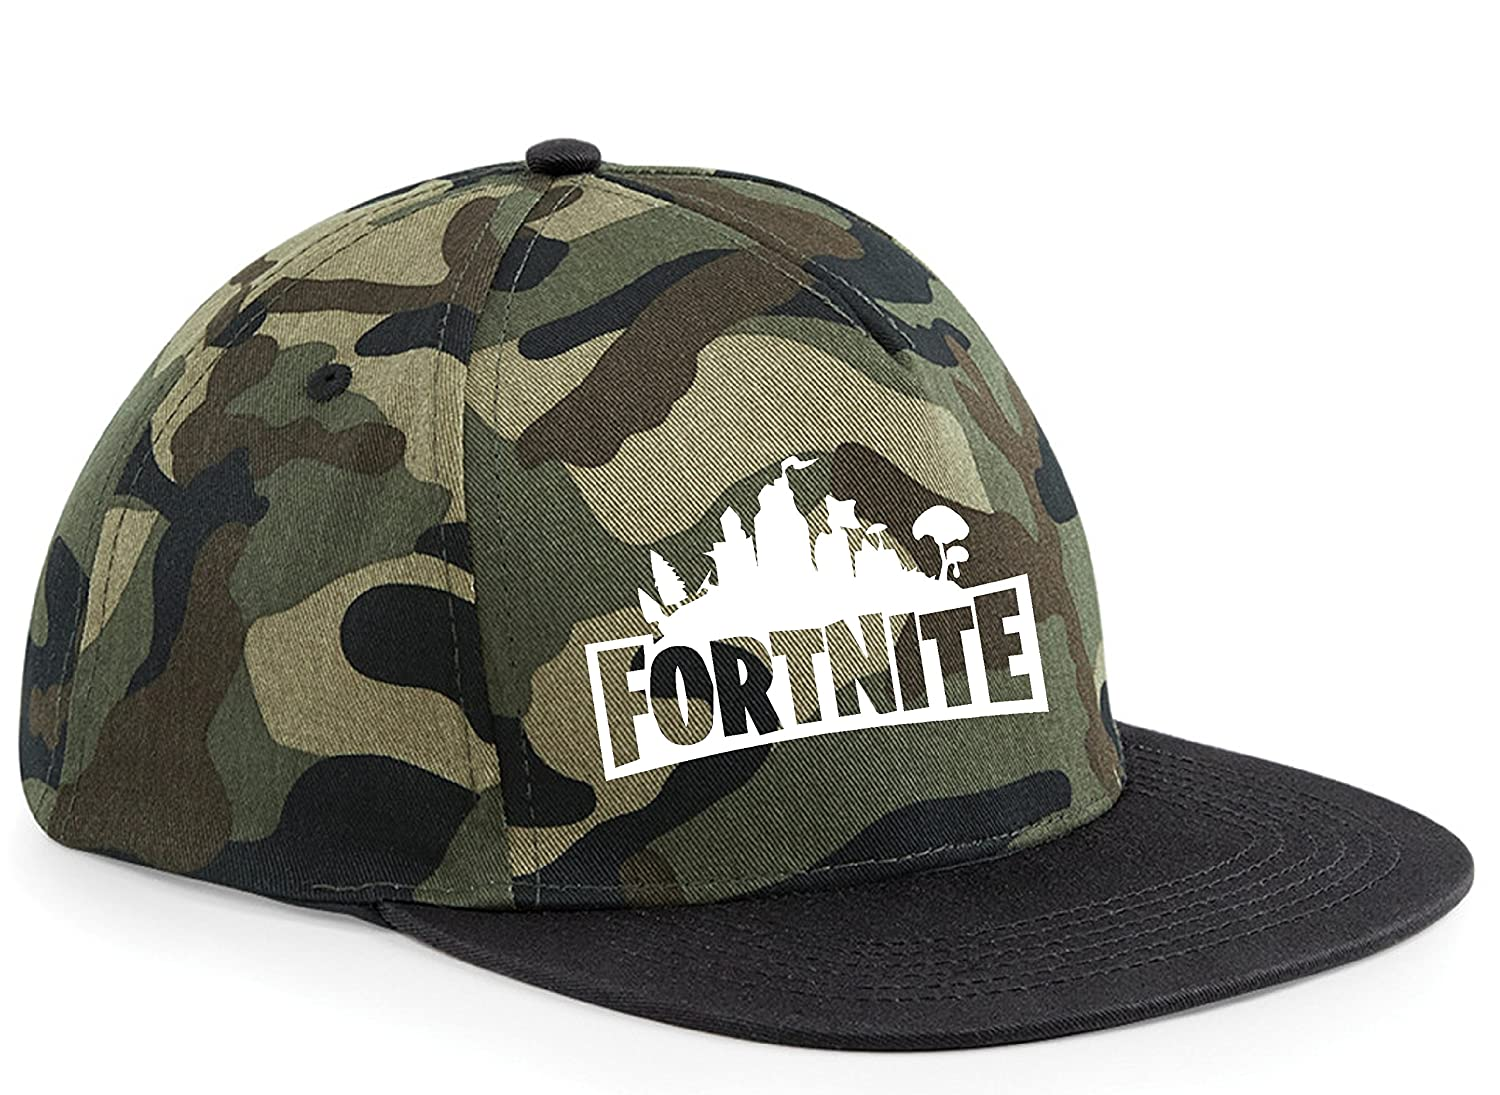 64ff21b39f6 Snapback Cap HAT Fortnite Inspired PS4 Xbox One PC Gaming Adjustable (CAMO  HAT Black Peak)  Amazon.co.uk  Clothing